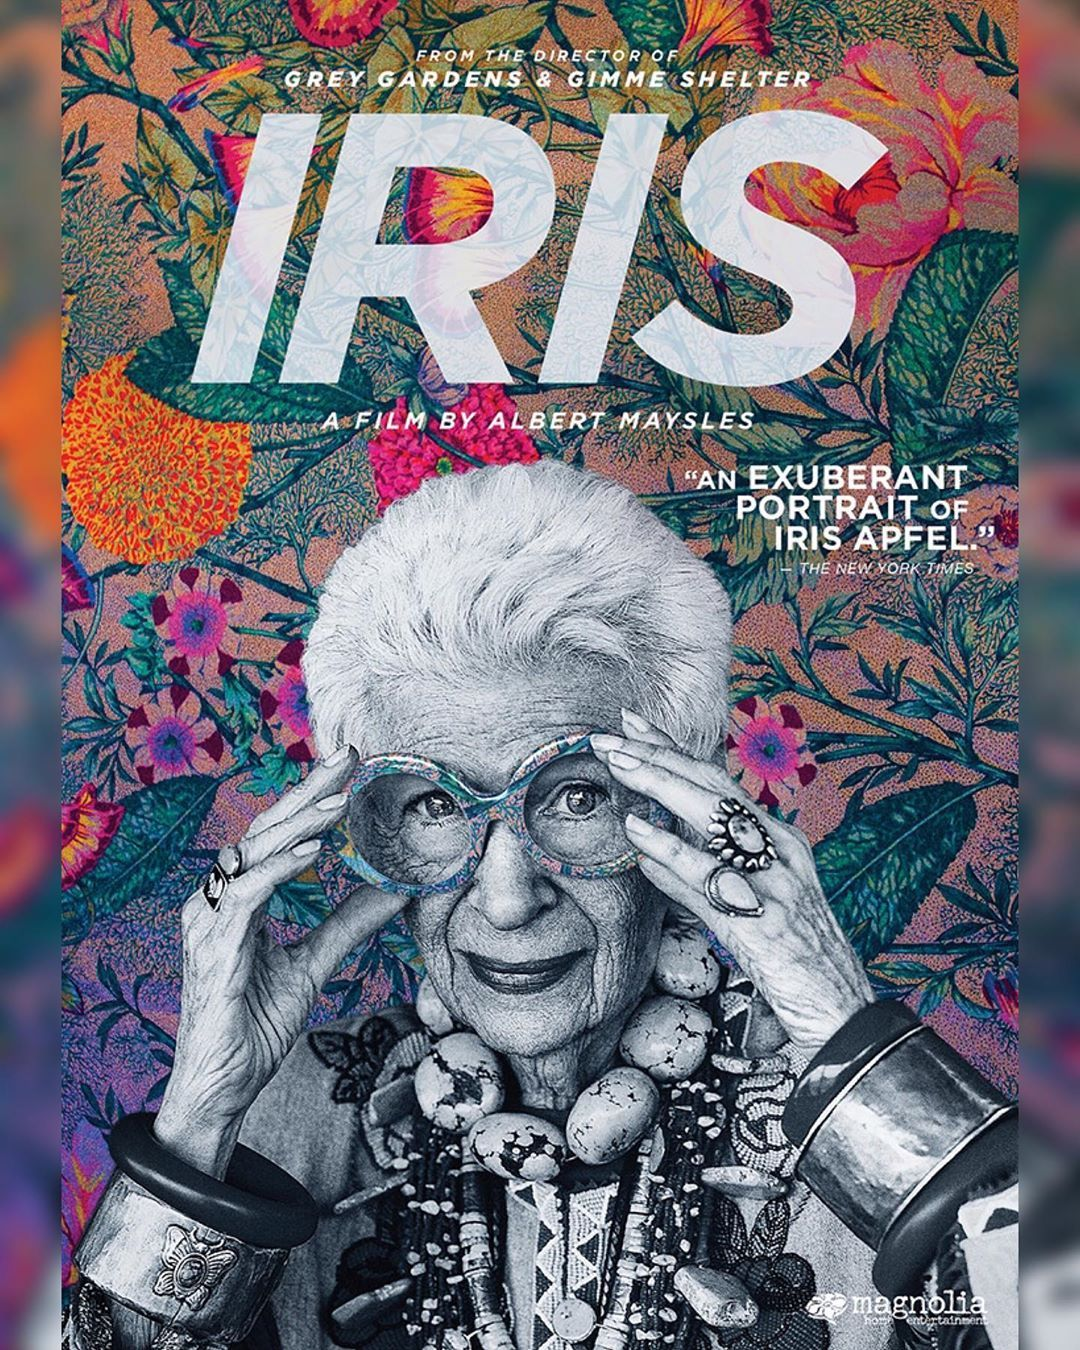 29 4k Likes 415 Comments Iris Apfel Iris Apfel On Instagram Are You Quarantined And Needing Something To Watch I 2020 Iris Apfel Affisch Design Filmaffischer